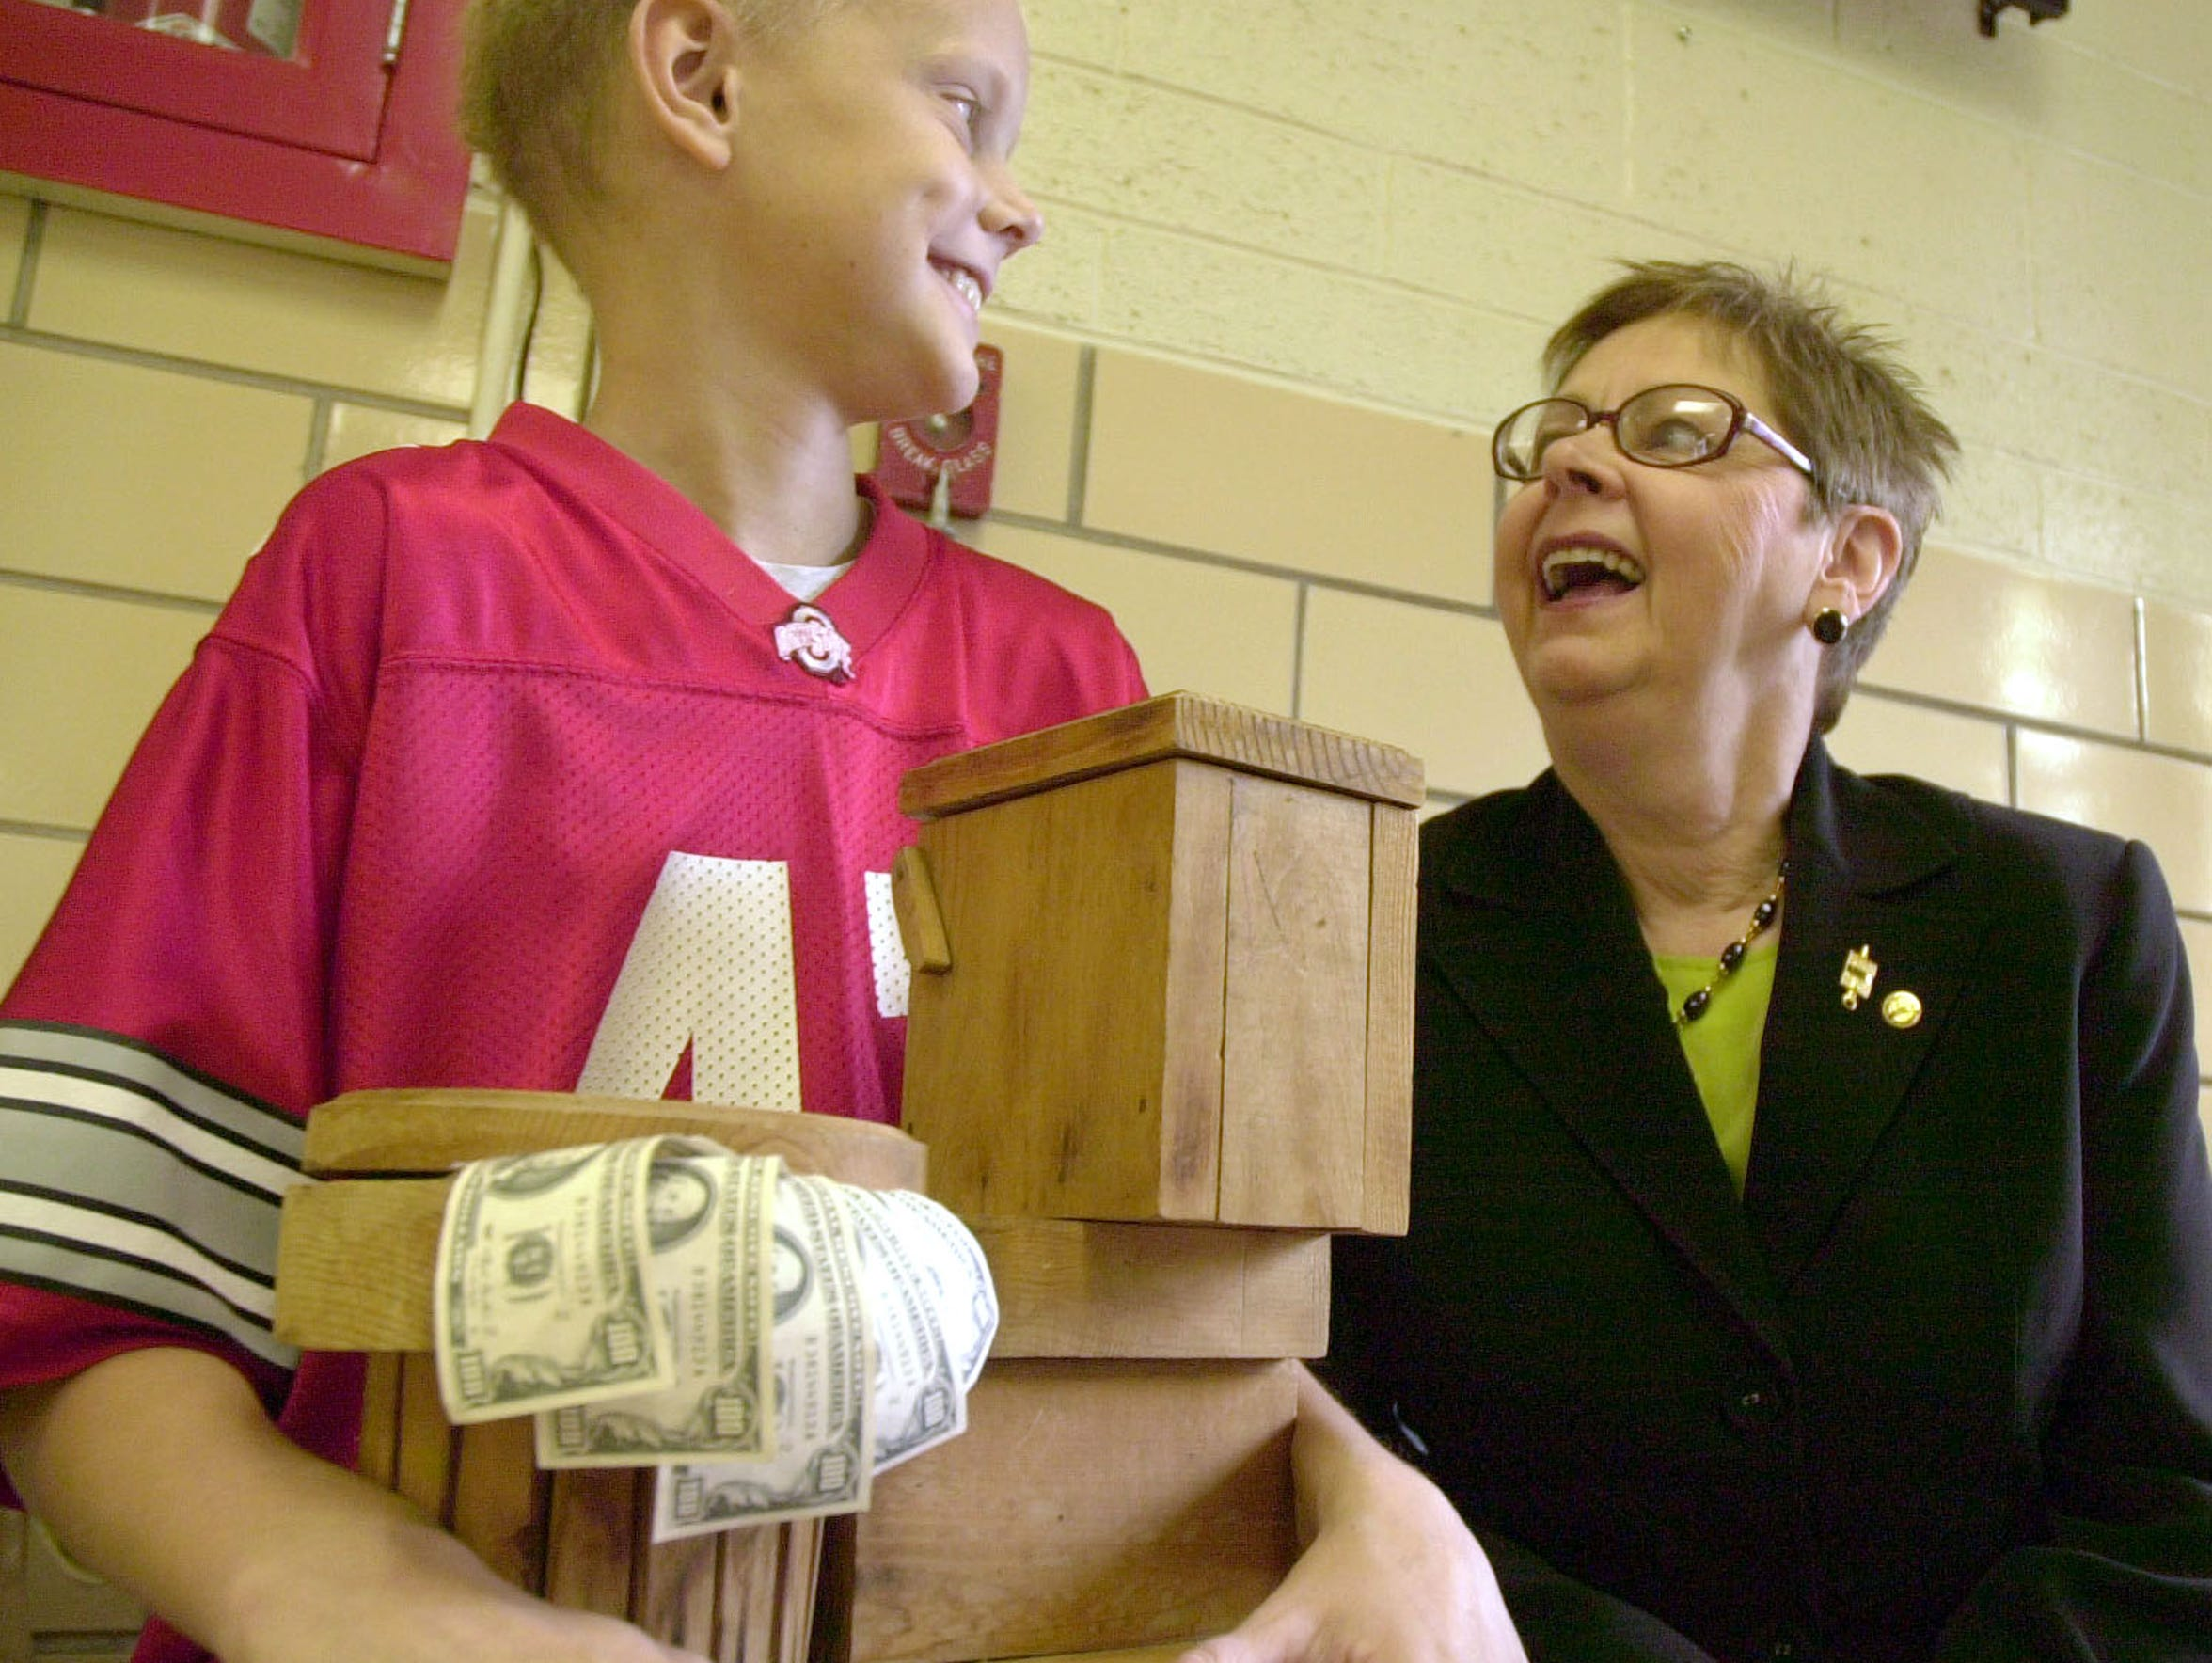 Mason Ream talks with Diane Hipsher after a fund-raising event in 2005.